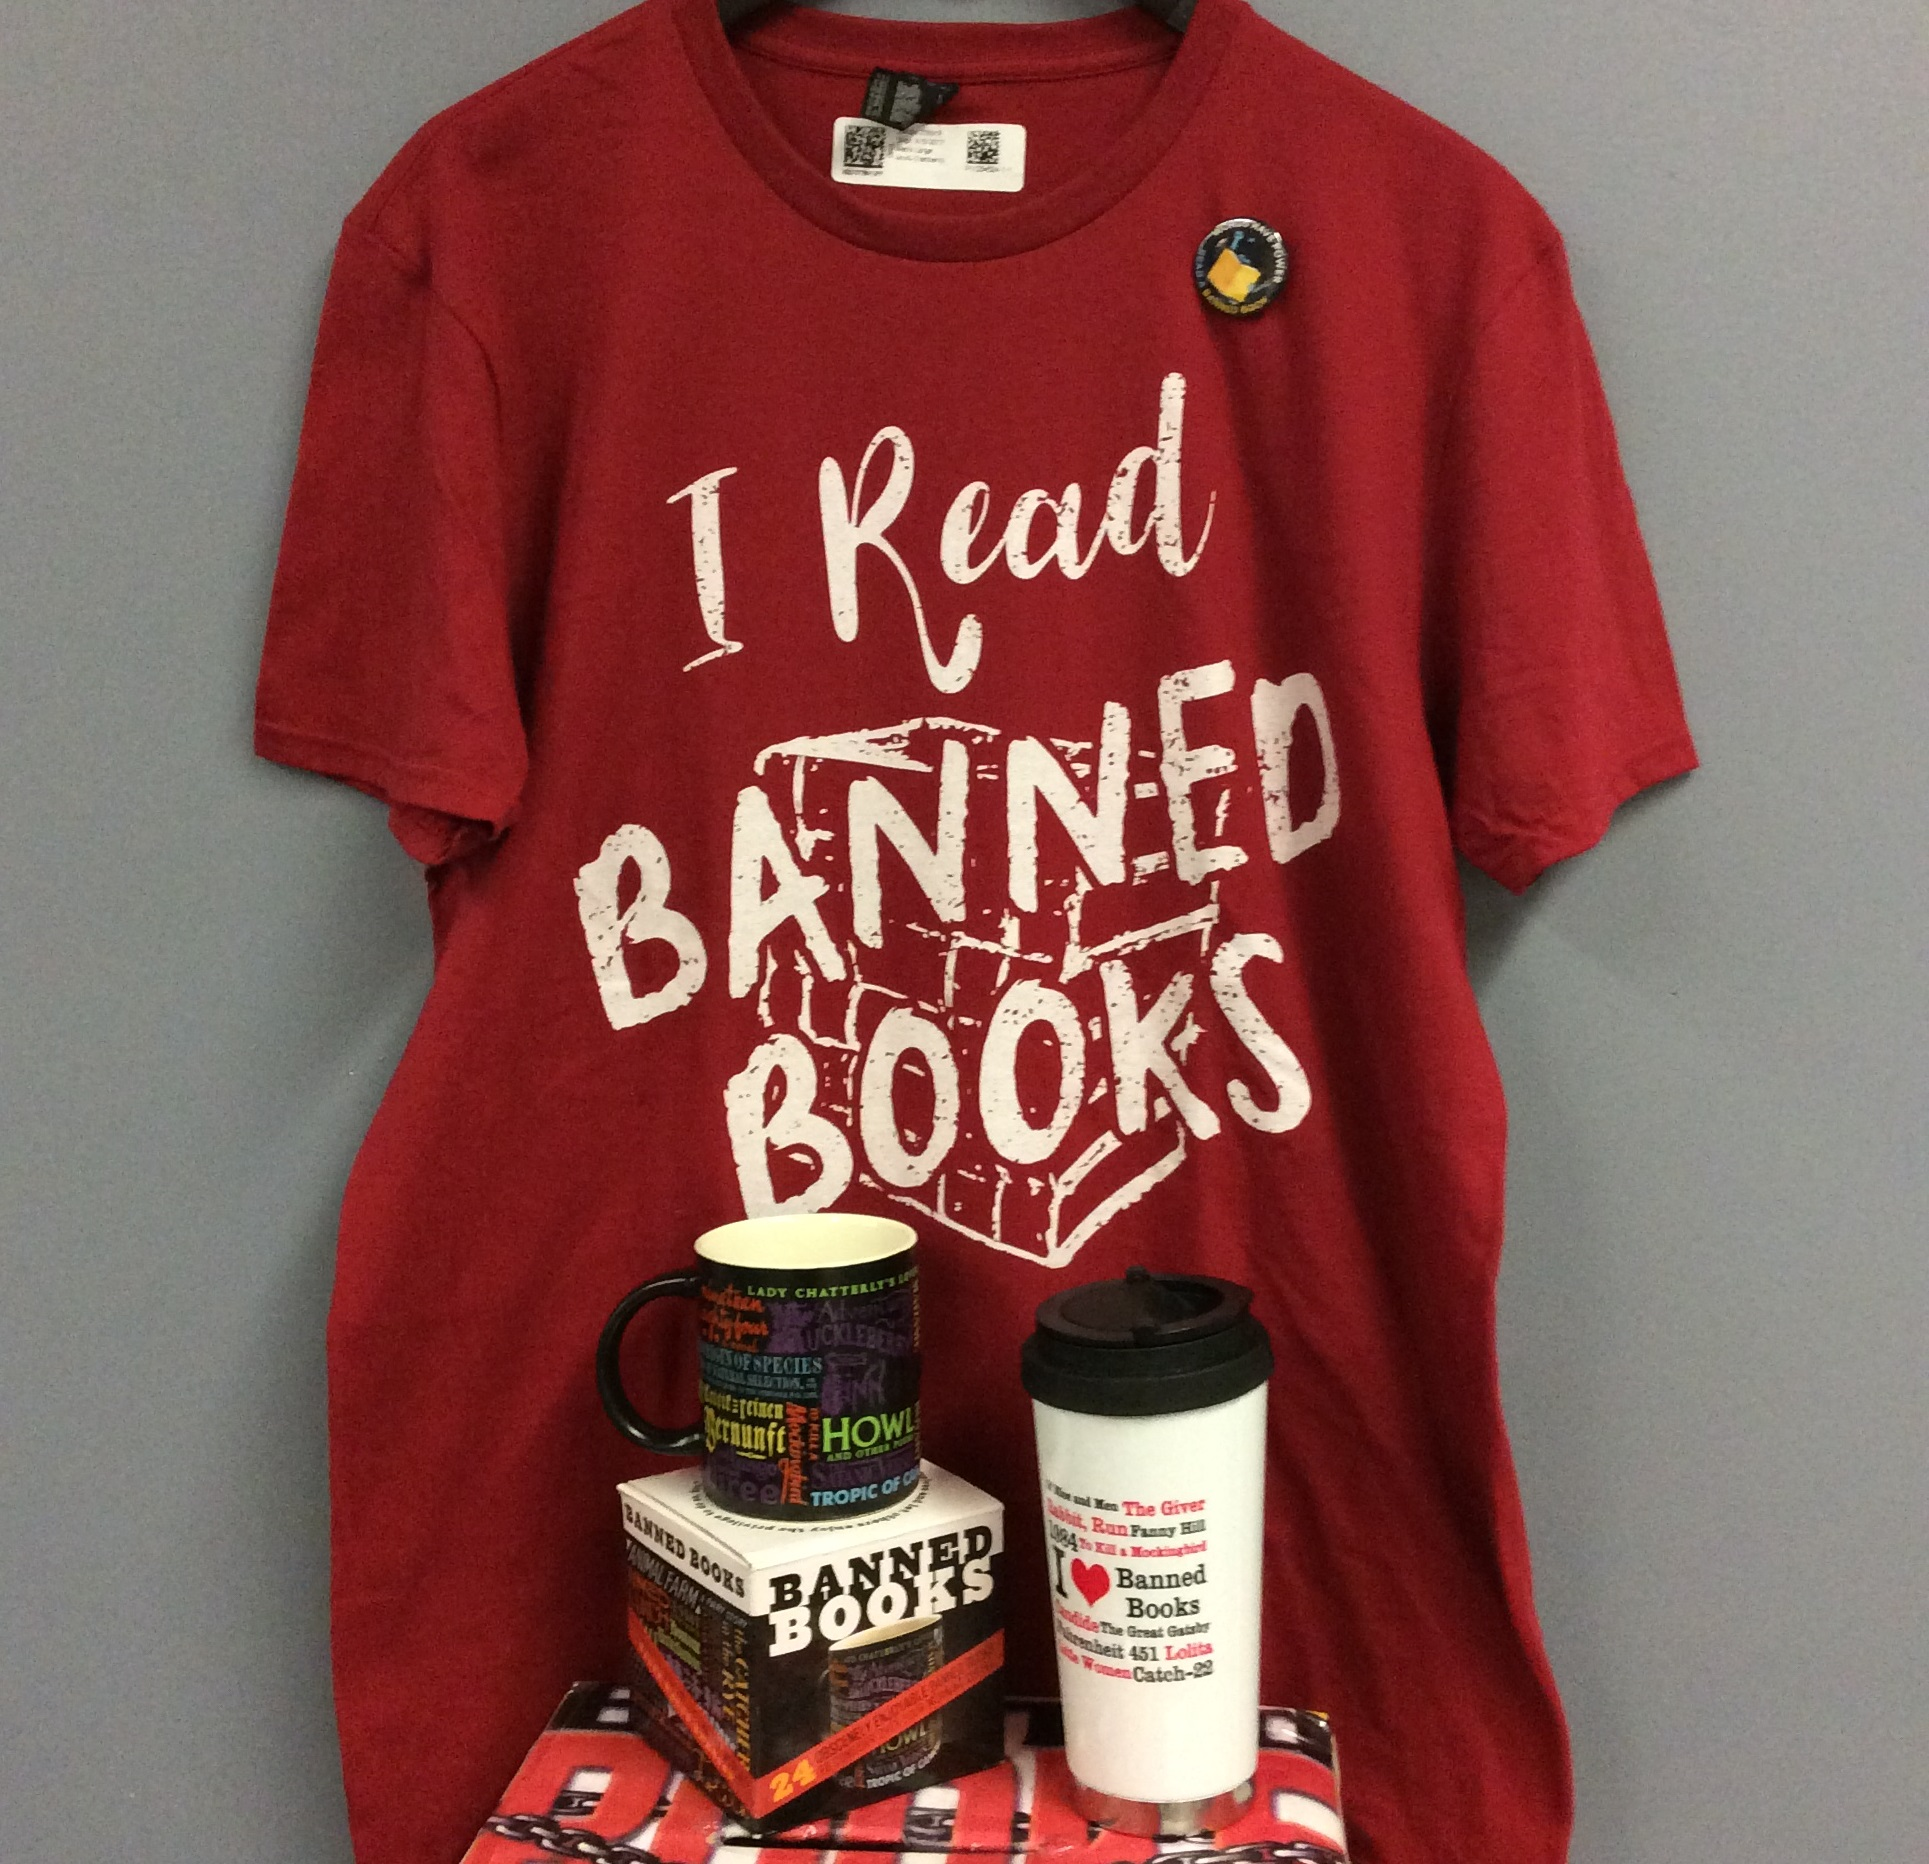 Banned Books Week 2017 giveaway prizes.